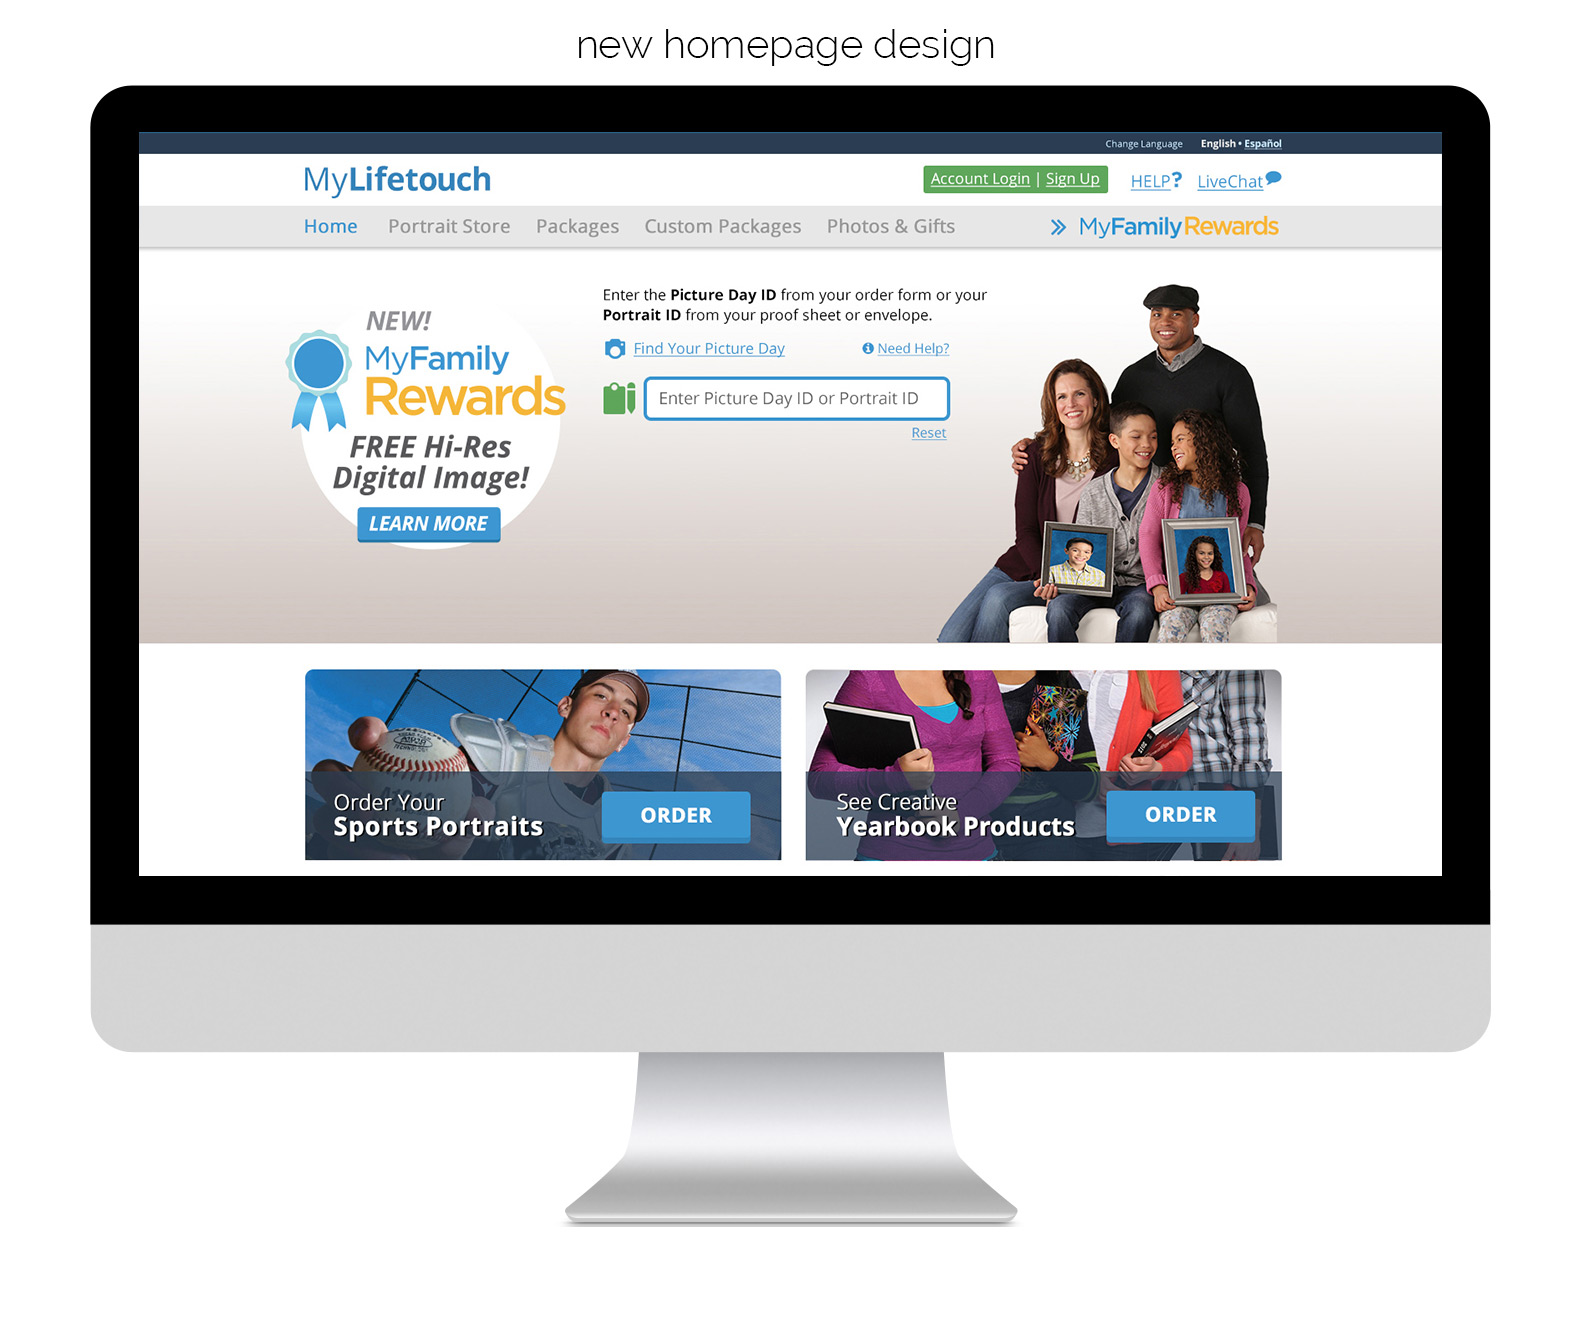 New MyLifetouch.com homepage design